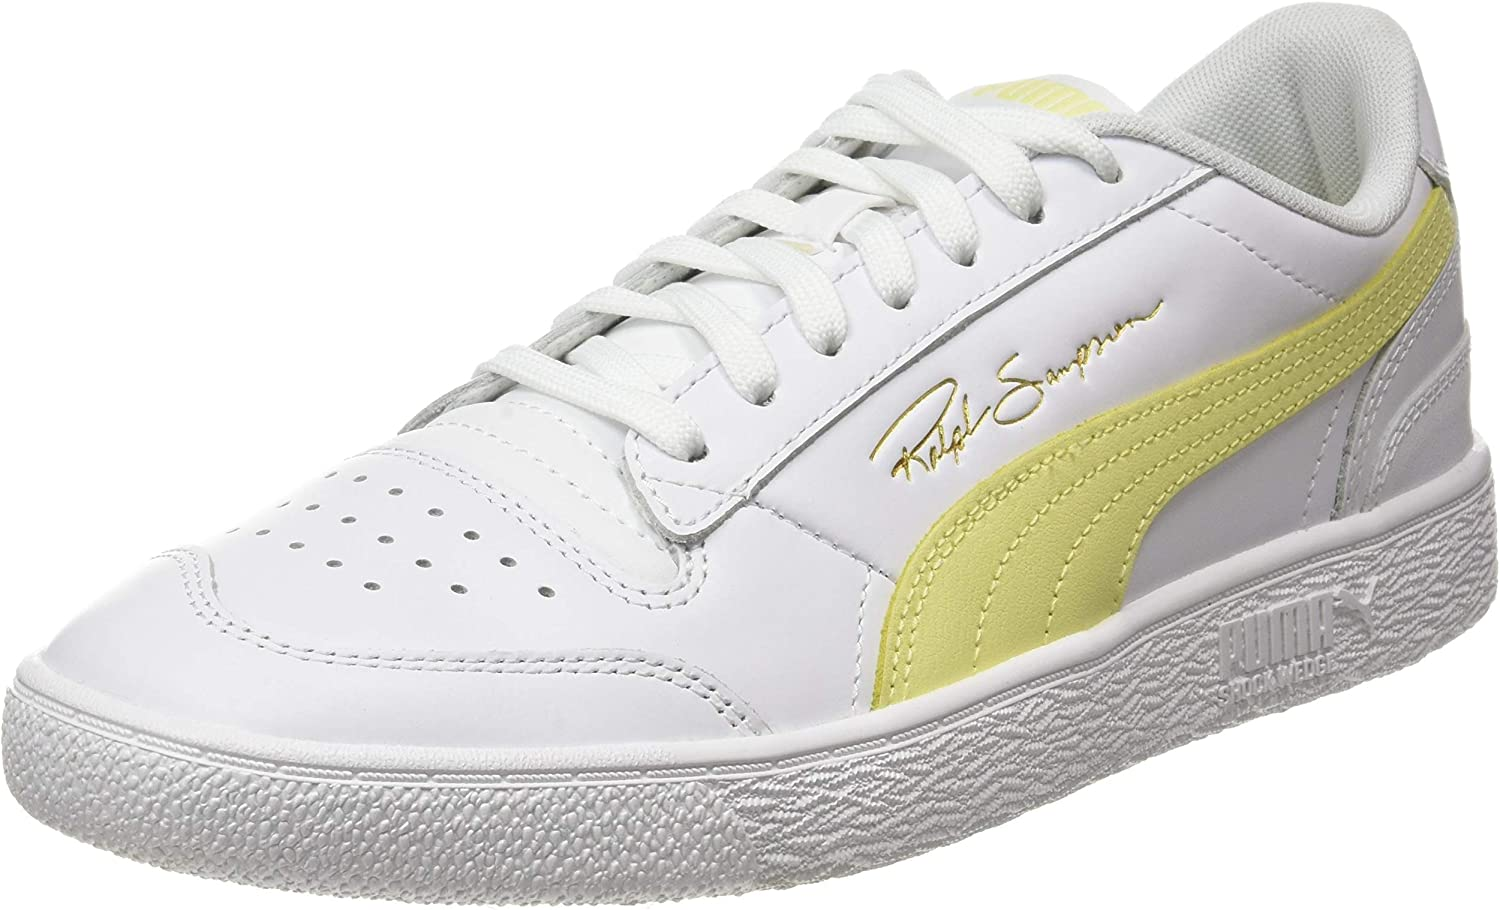 PUMA New Shipping Free Shipping Men's Low-Top Tucson Mall Size Trainers One